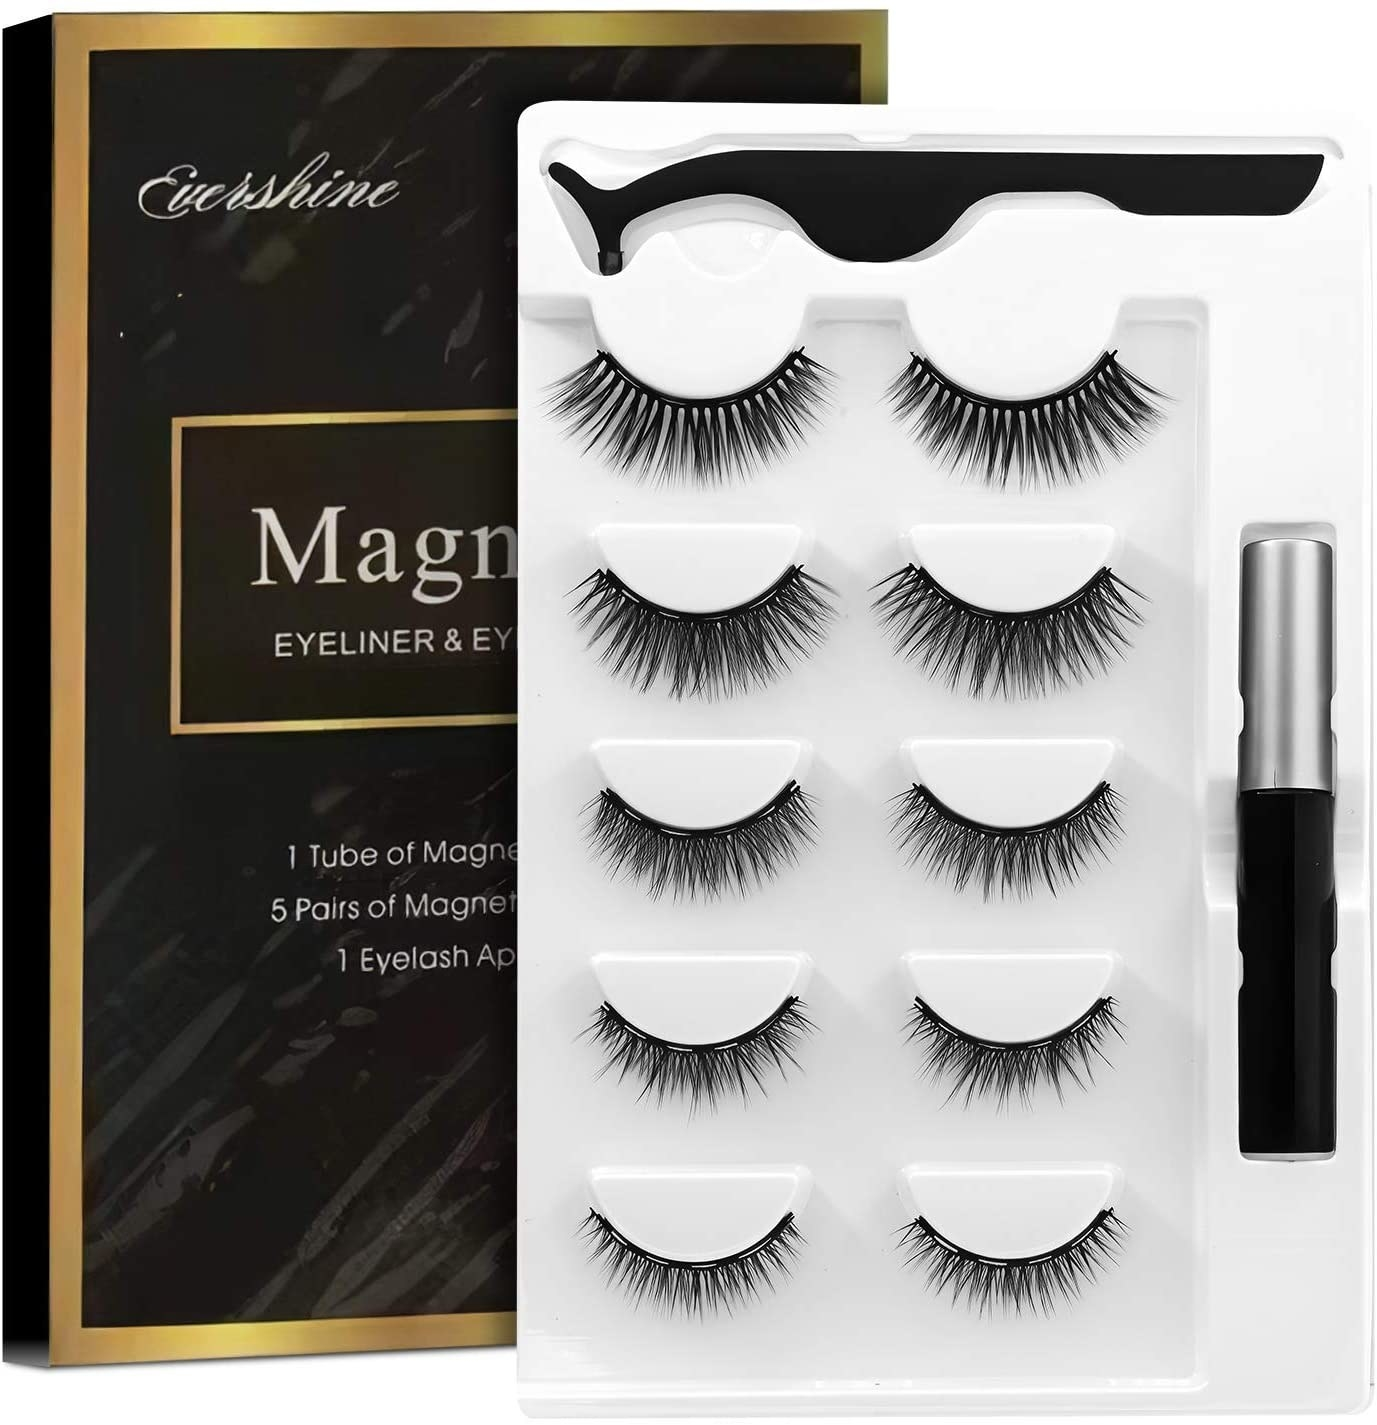 A pack of five pairs of false eyelashes, the magnetic liner, and the tweezer tool